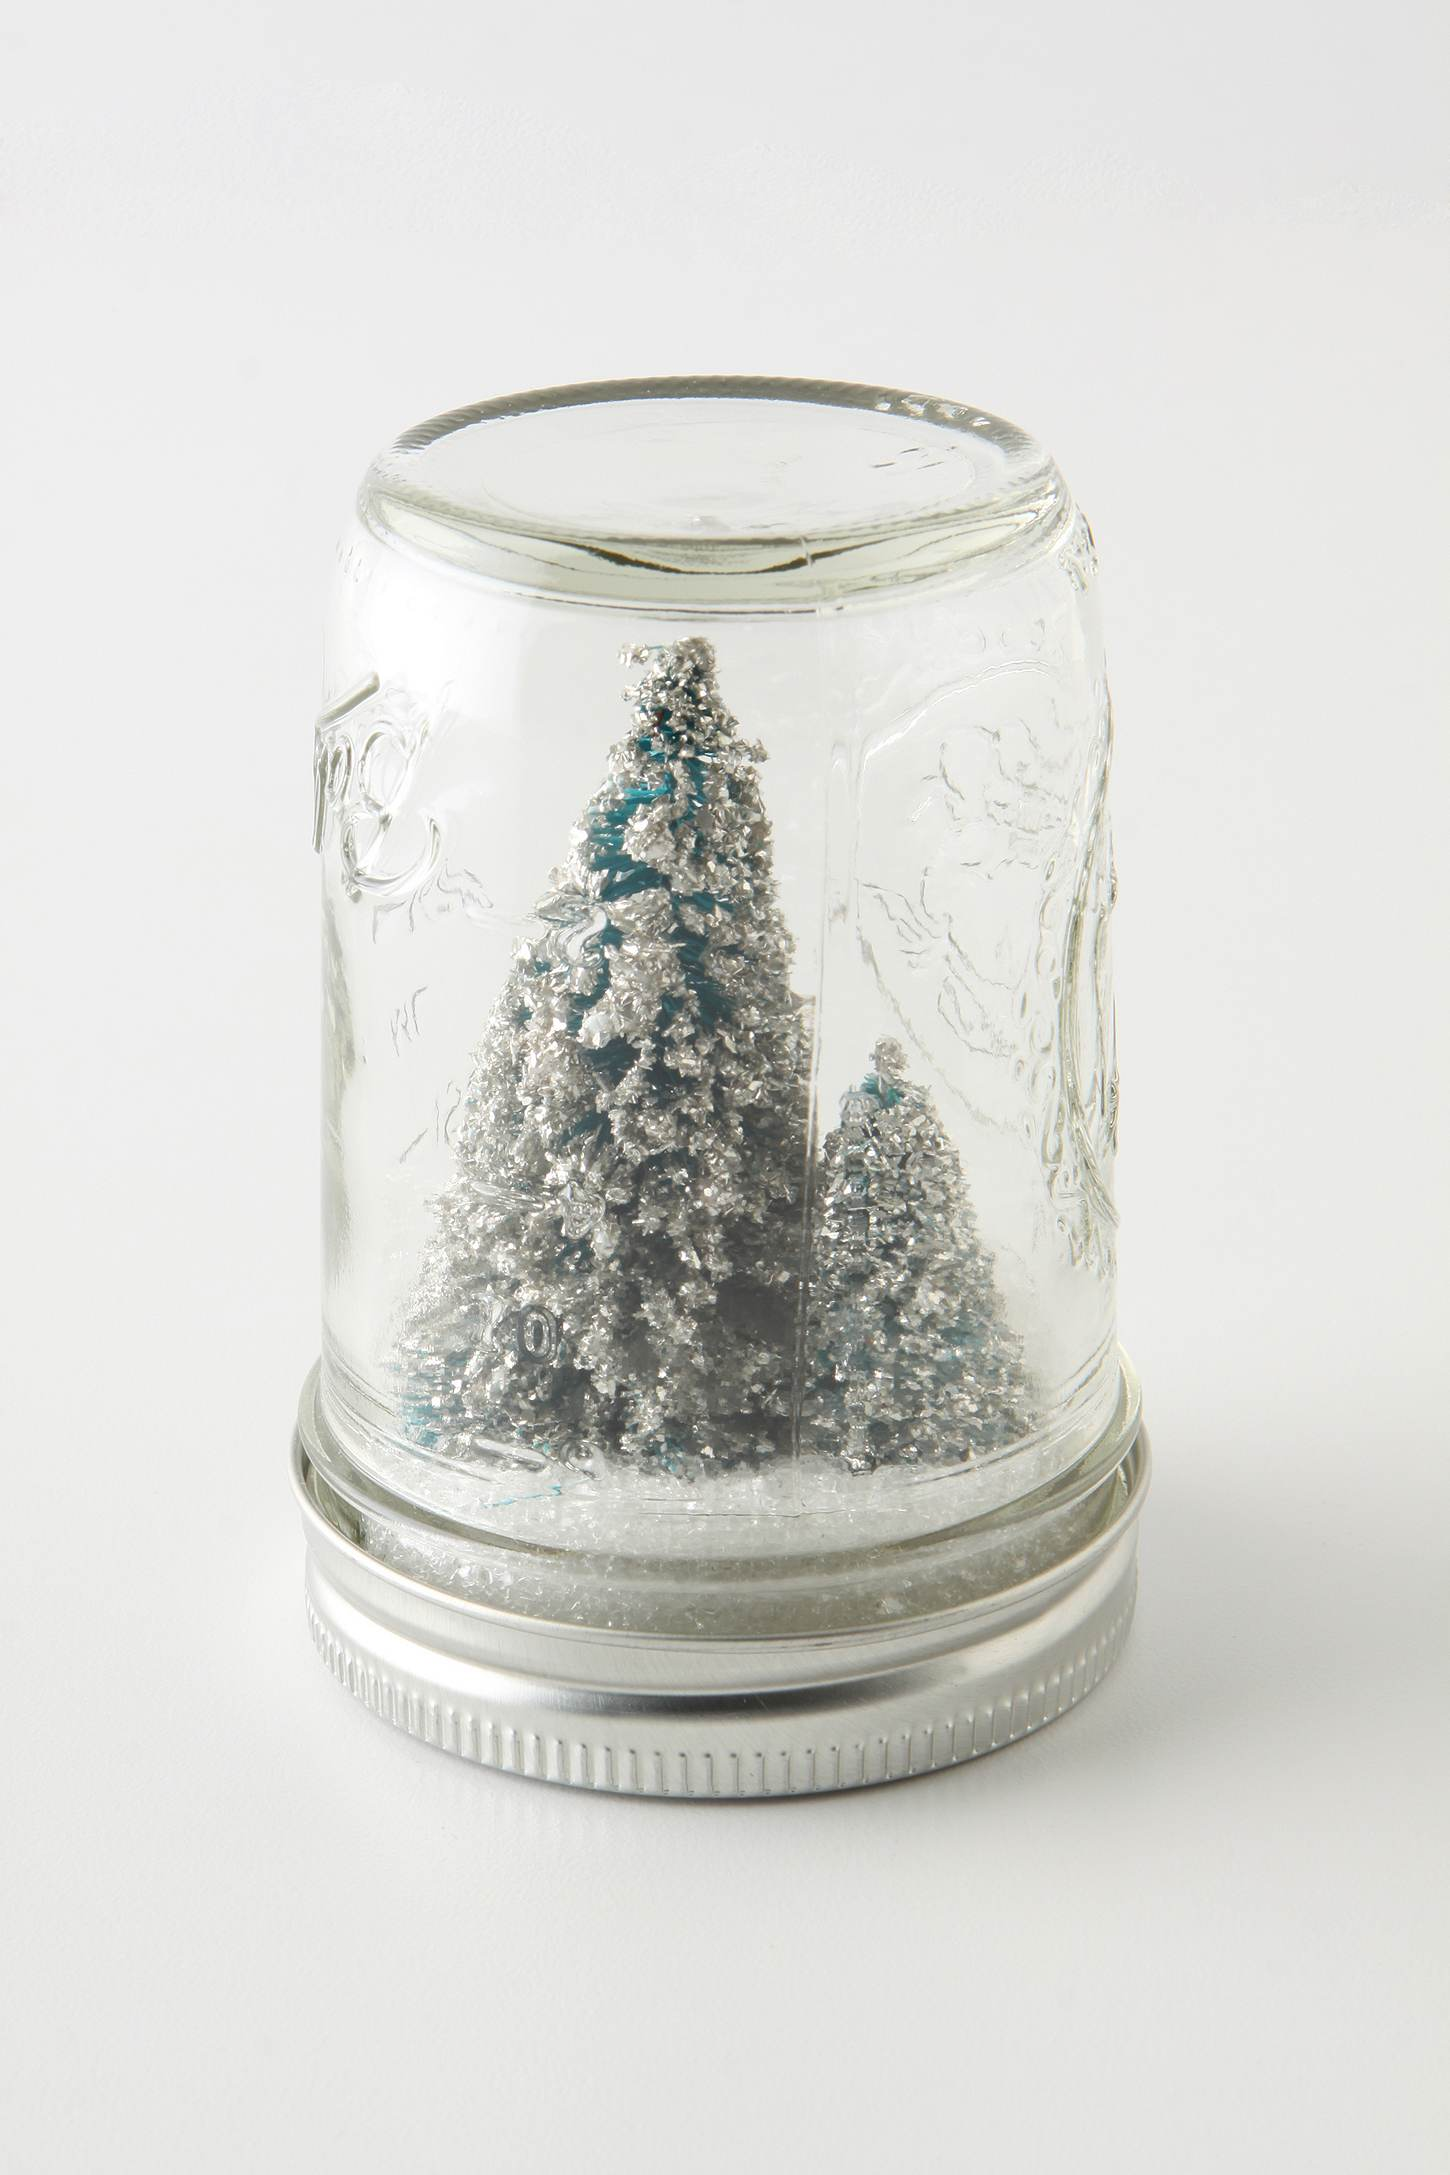 inspired & crafted: homemade holiday mason jar snowglobes with tiny ...